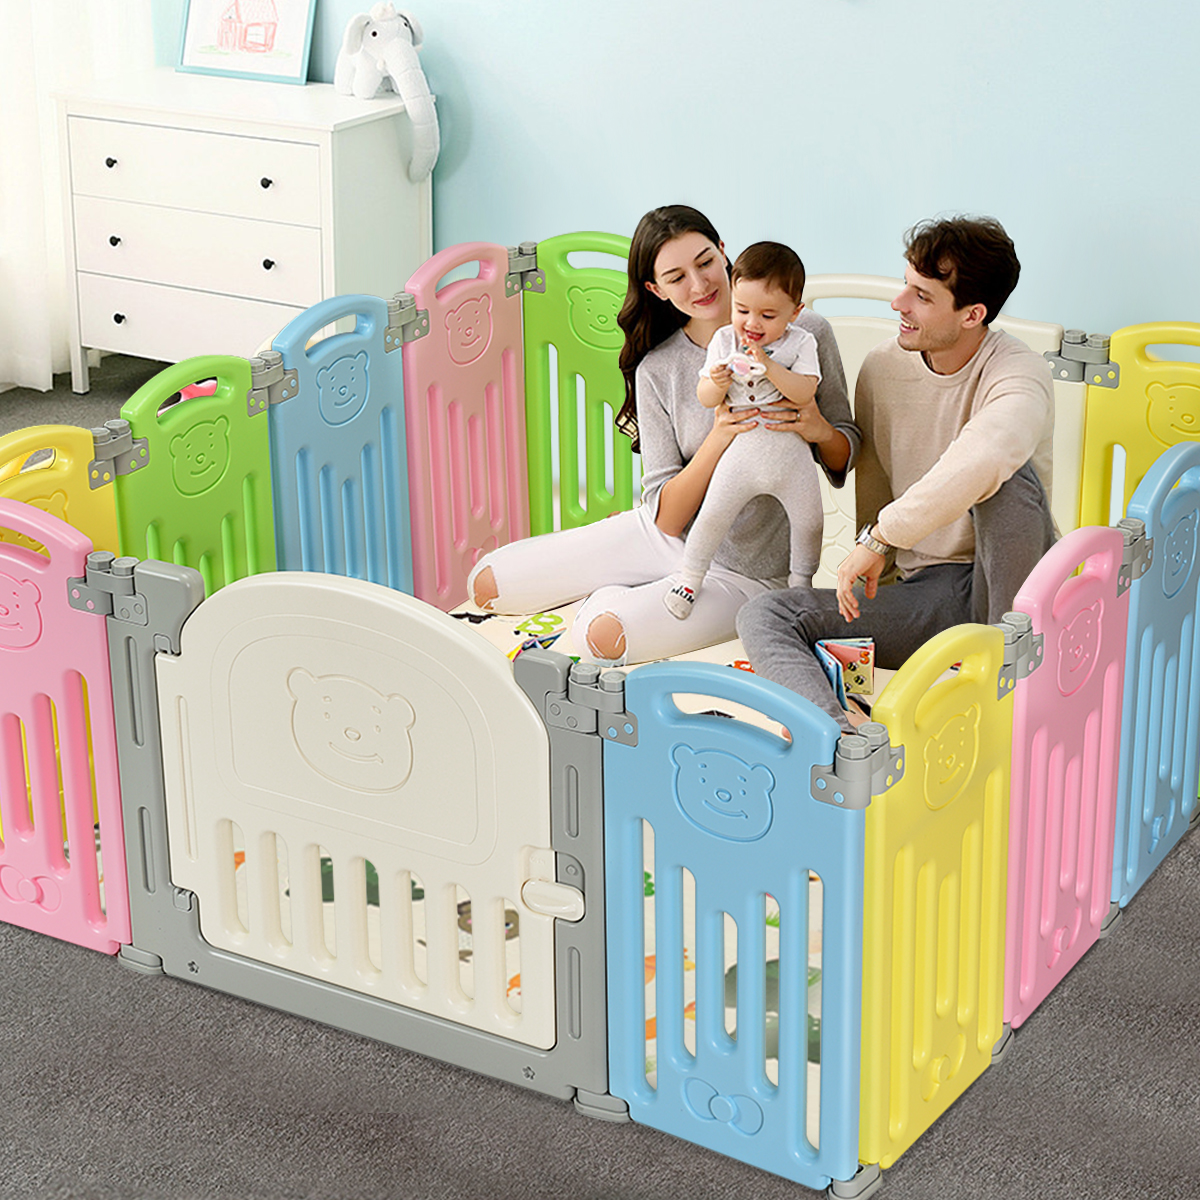 14 Panel Foldable Baby Playpen Kids Activity Center Safety Yard W/Lock Door